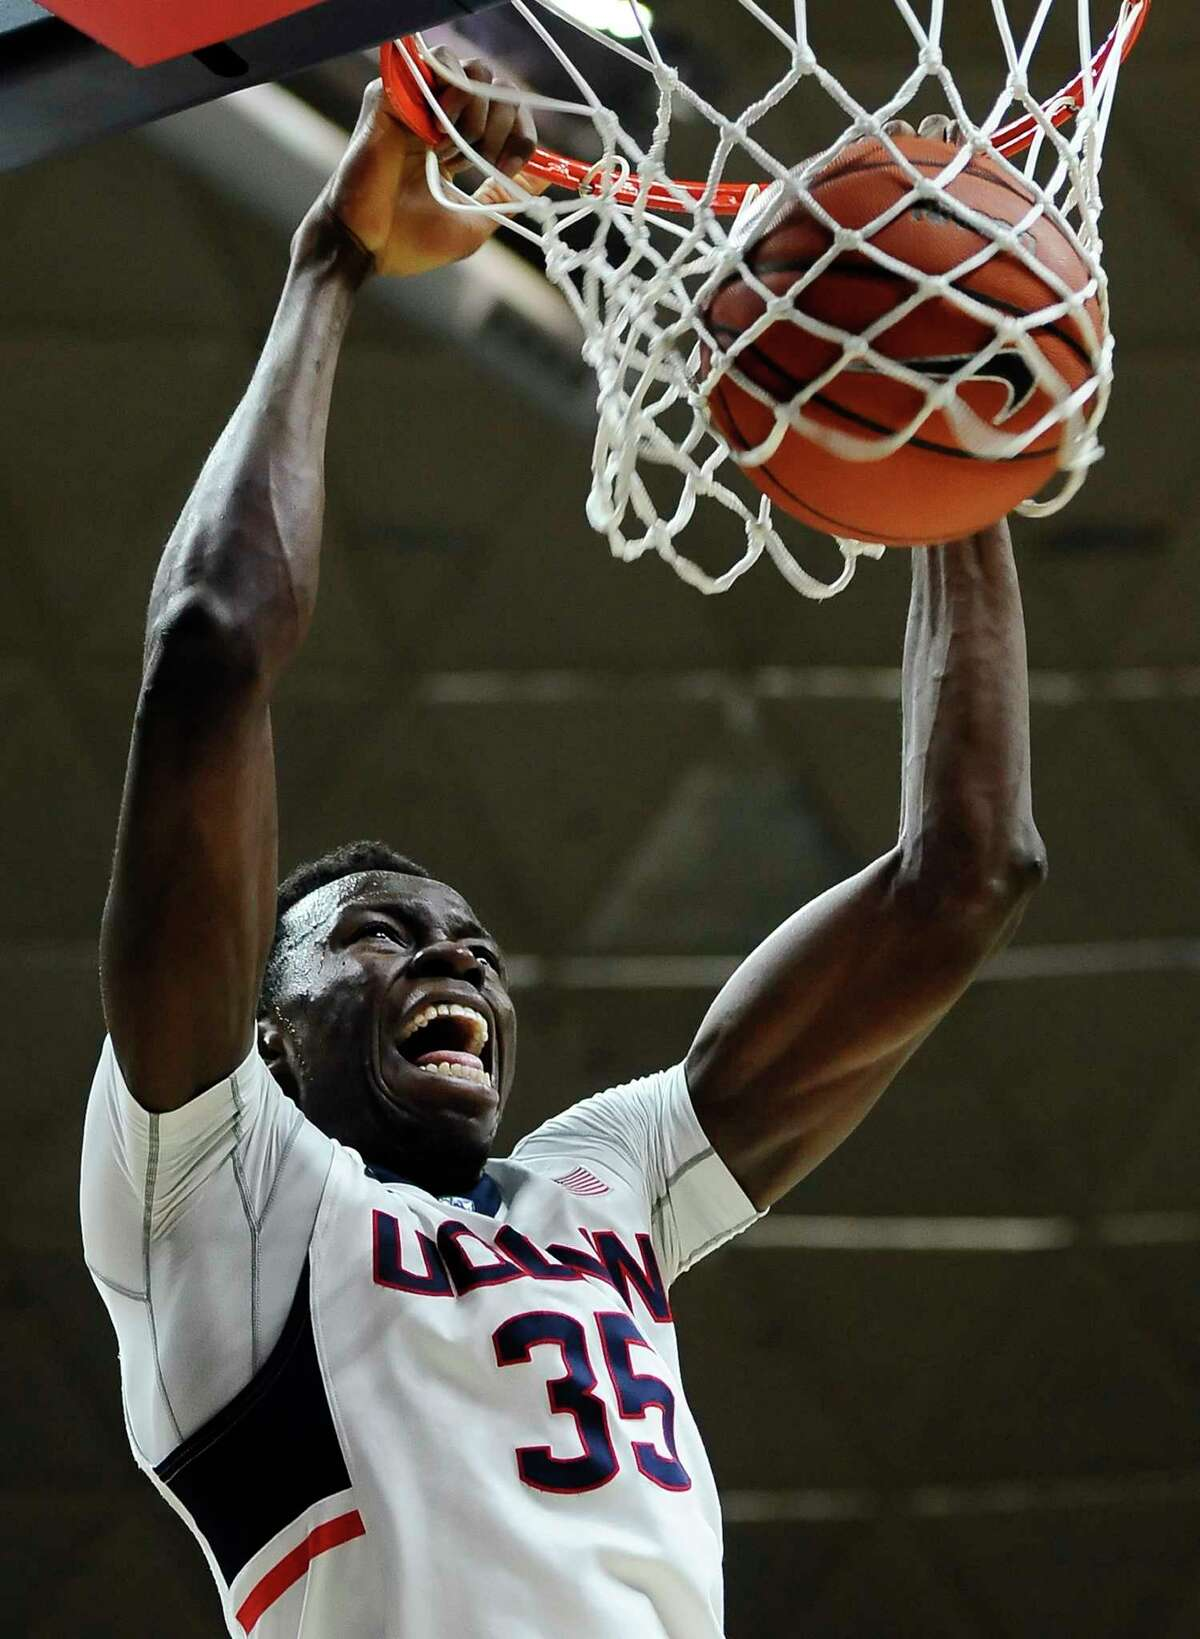 UConn's Amida Brimah dunks during the second half of the Huskies' 100-56 win over Maine on Friday in Storrs.